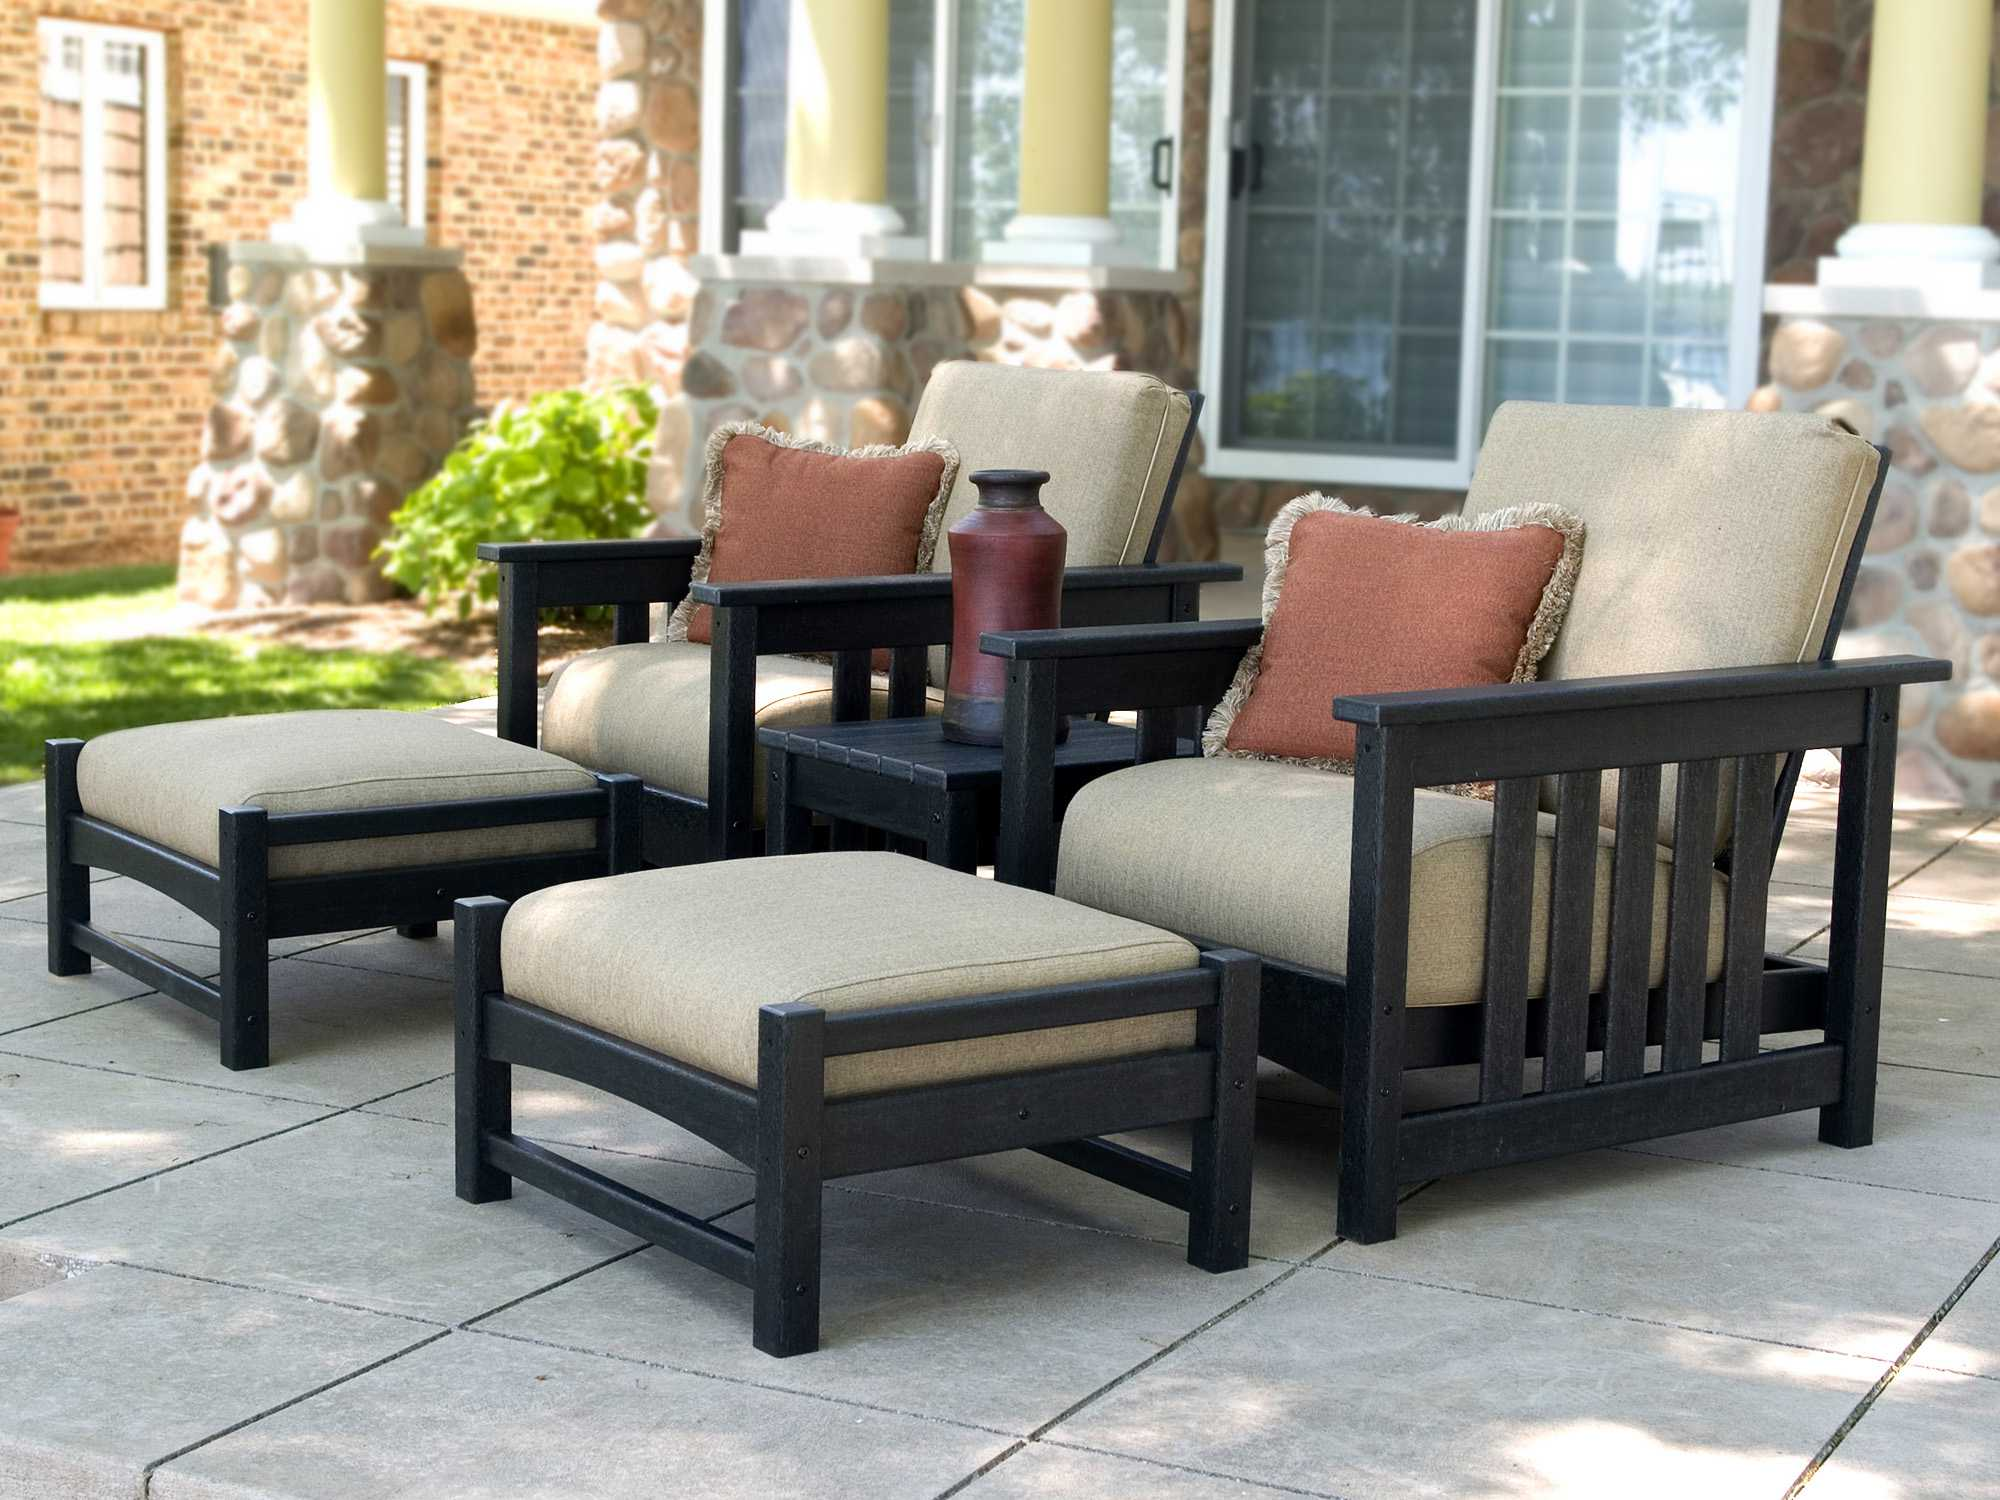 POLYWOOD Mission Recycled Plastic Deep Seating Club Lounge Set